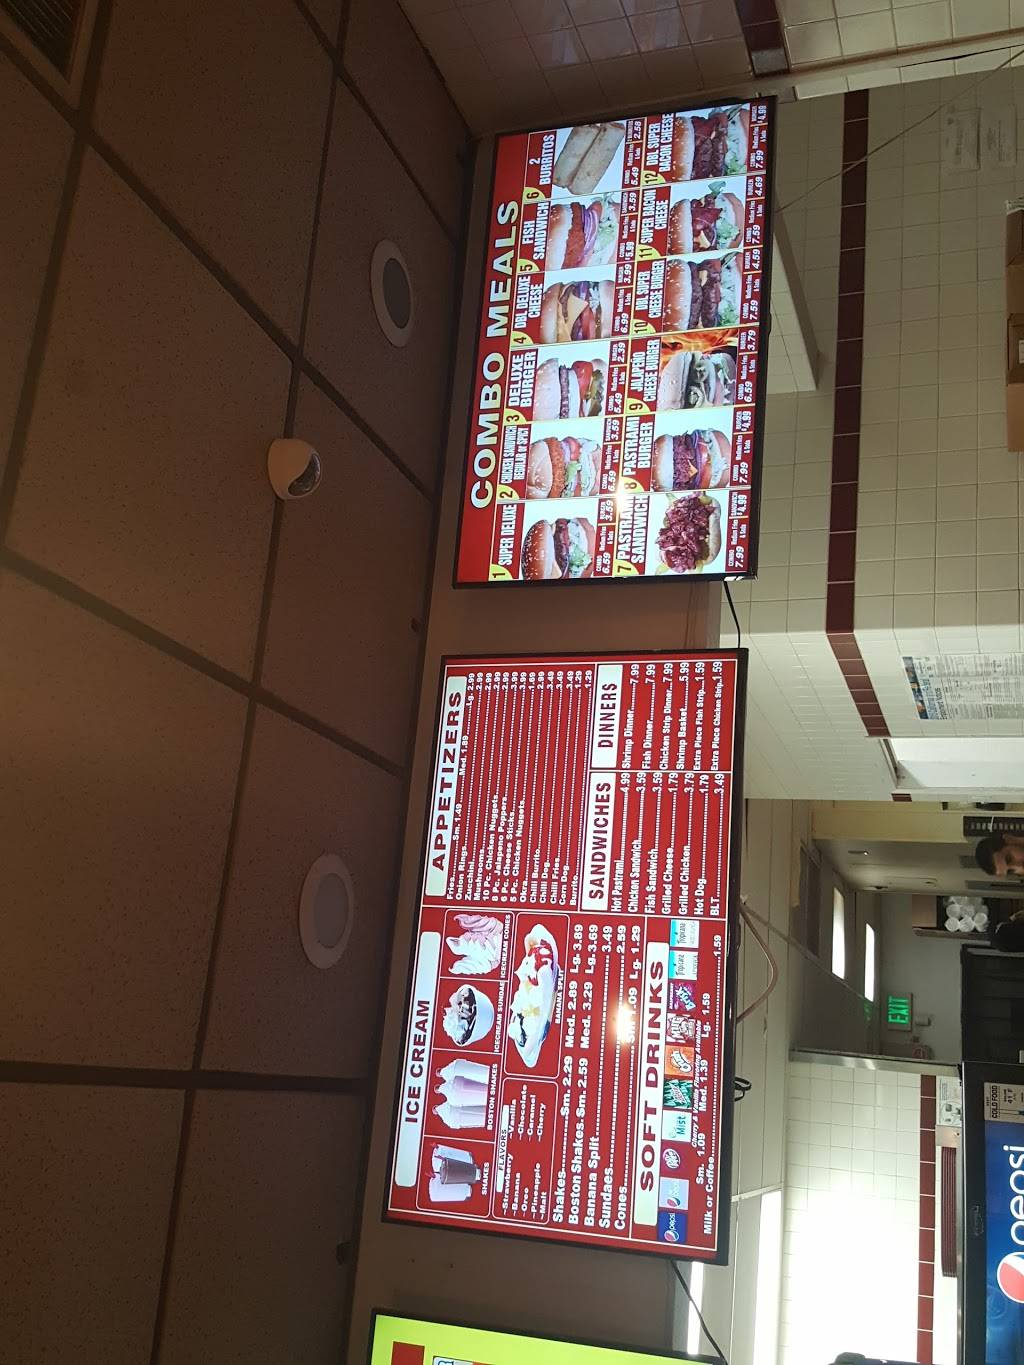 Js Drive-in | restaurant | 373 E Olive Ave, Porterville, CA 93257, USA | 5597823500 OR +1 559-782-3500